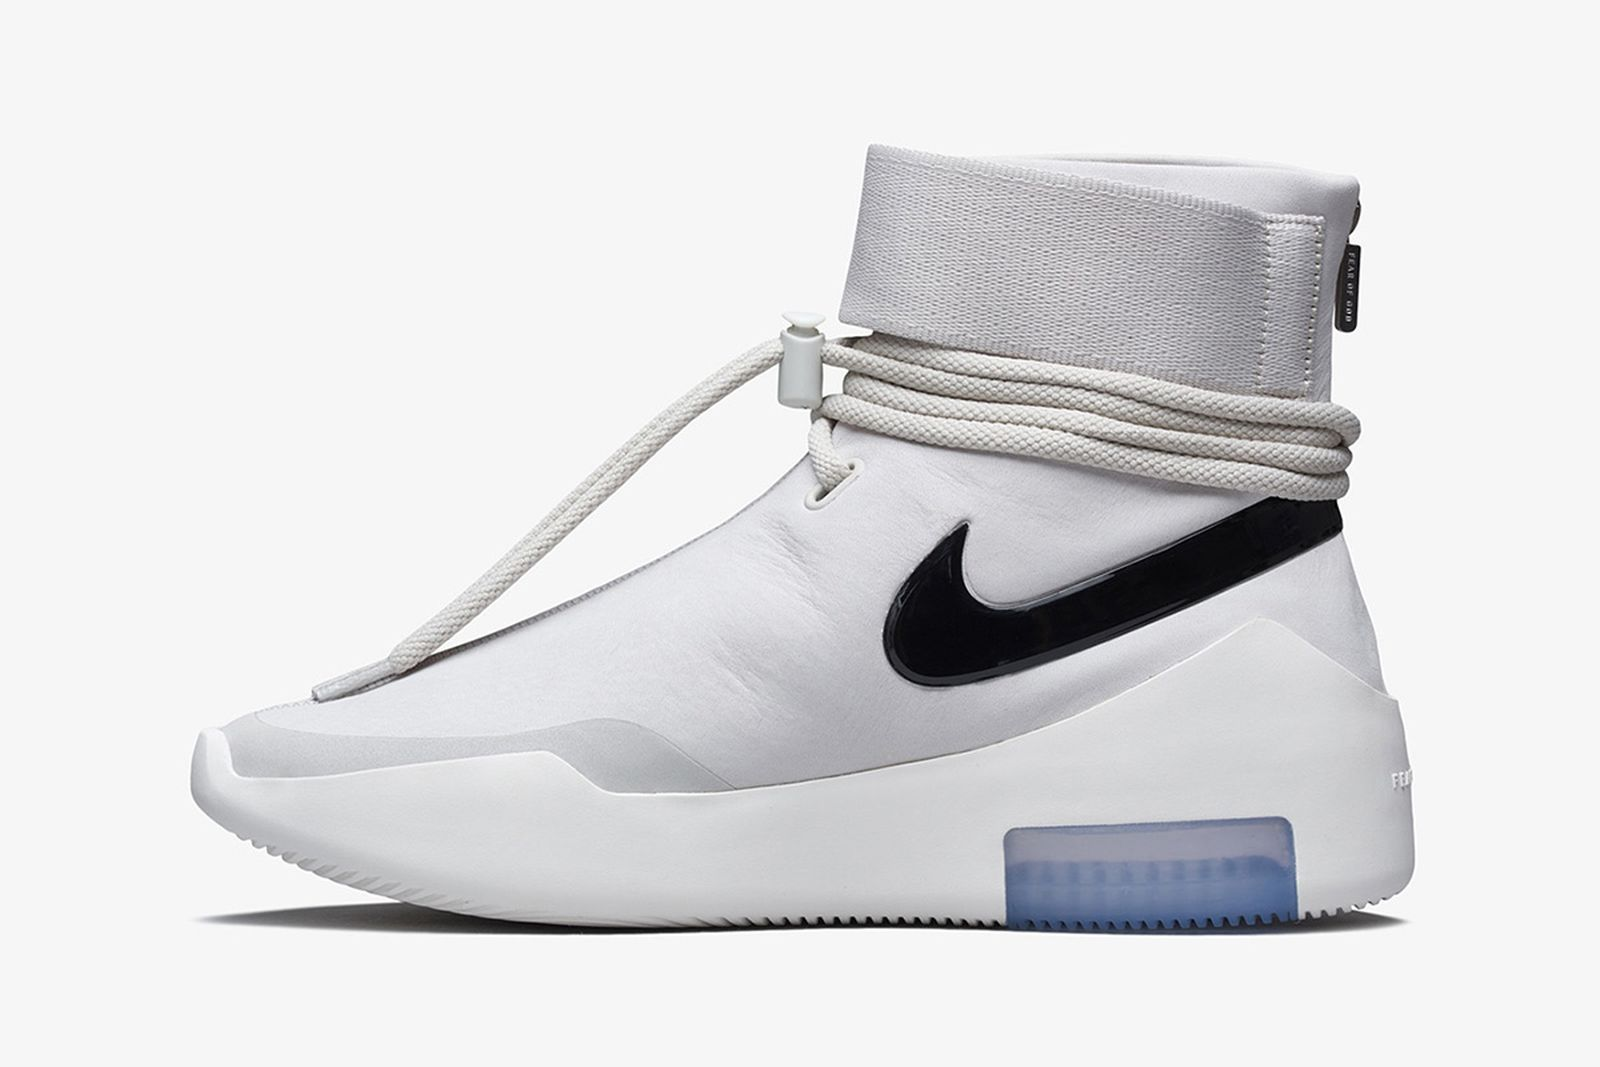 nike fear god air shoot around release date price Fear of God x Nike Jerry Lorenzo